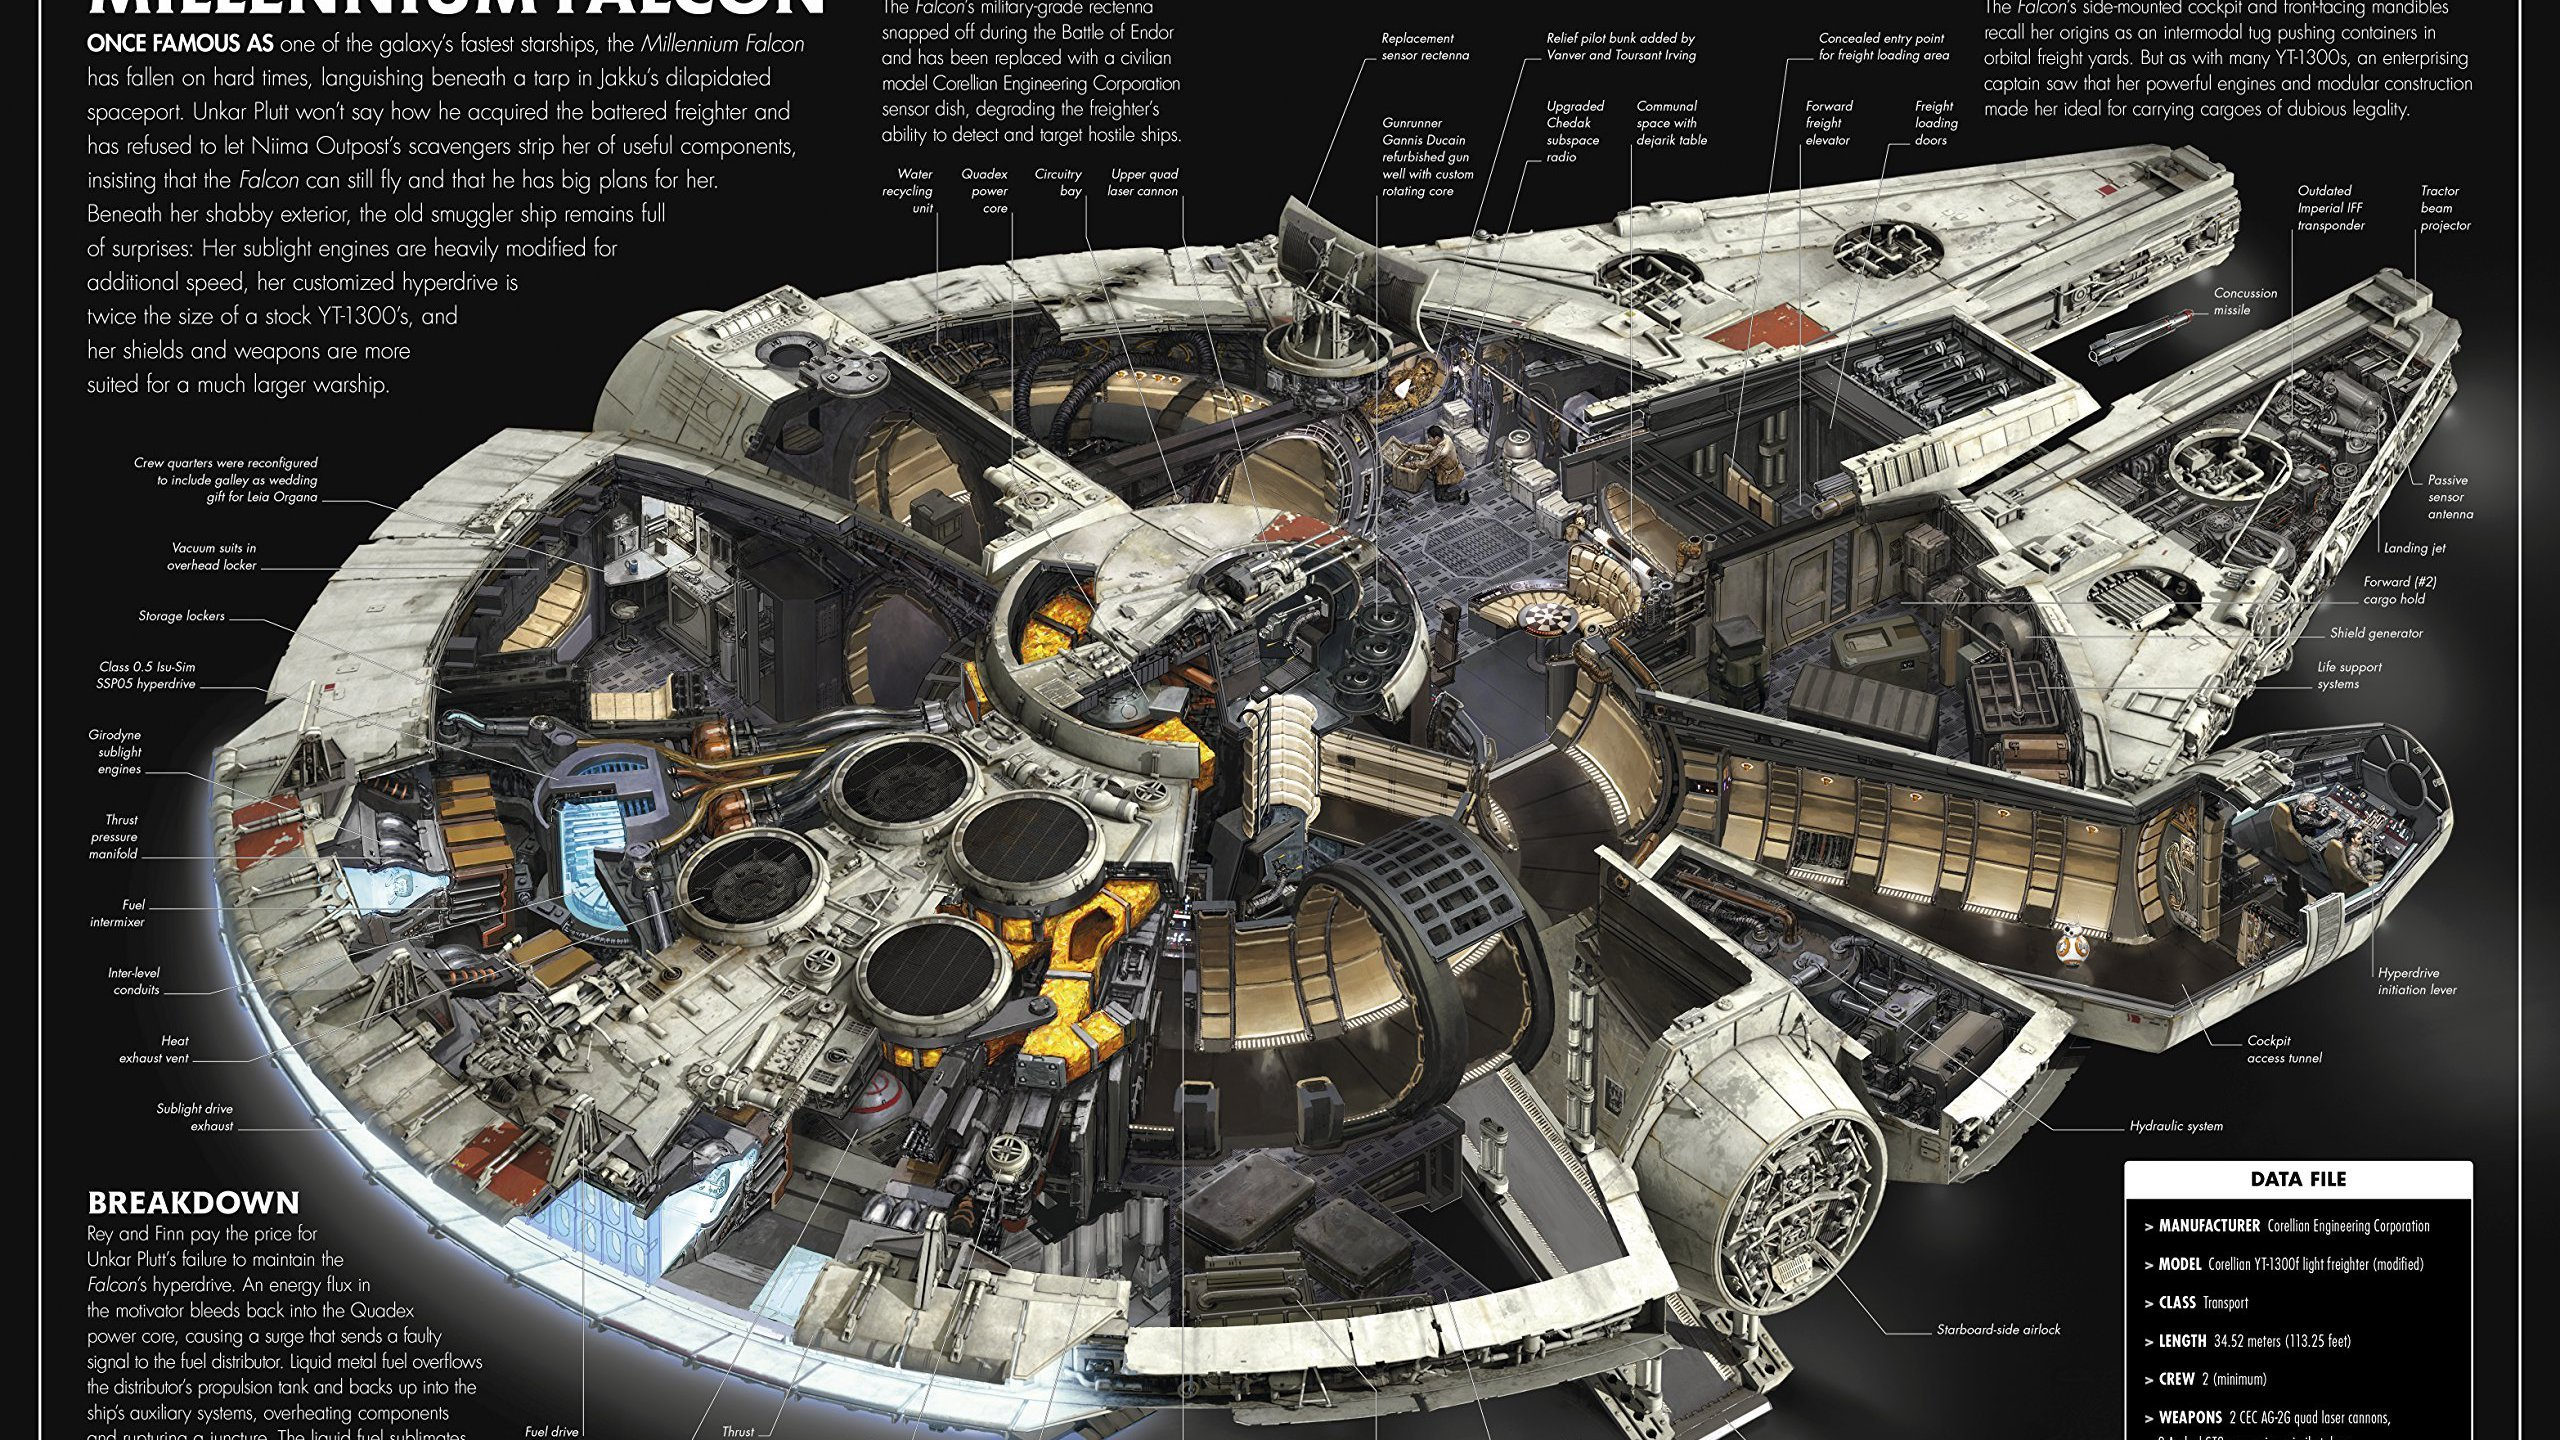 Star Wars VII - Millennium Falcon wallpaper